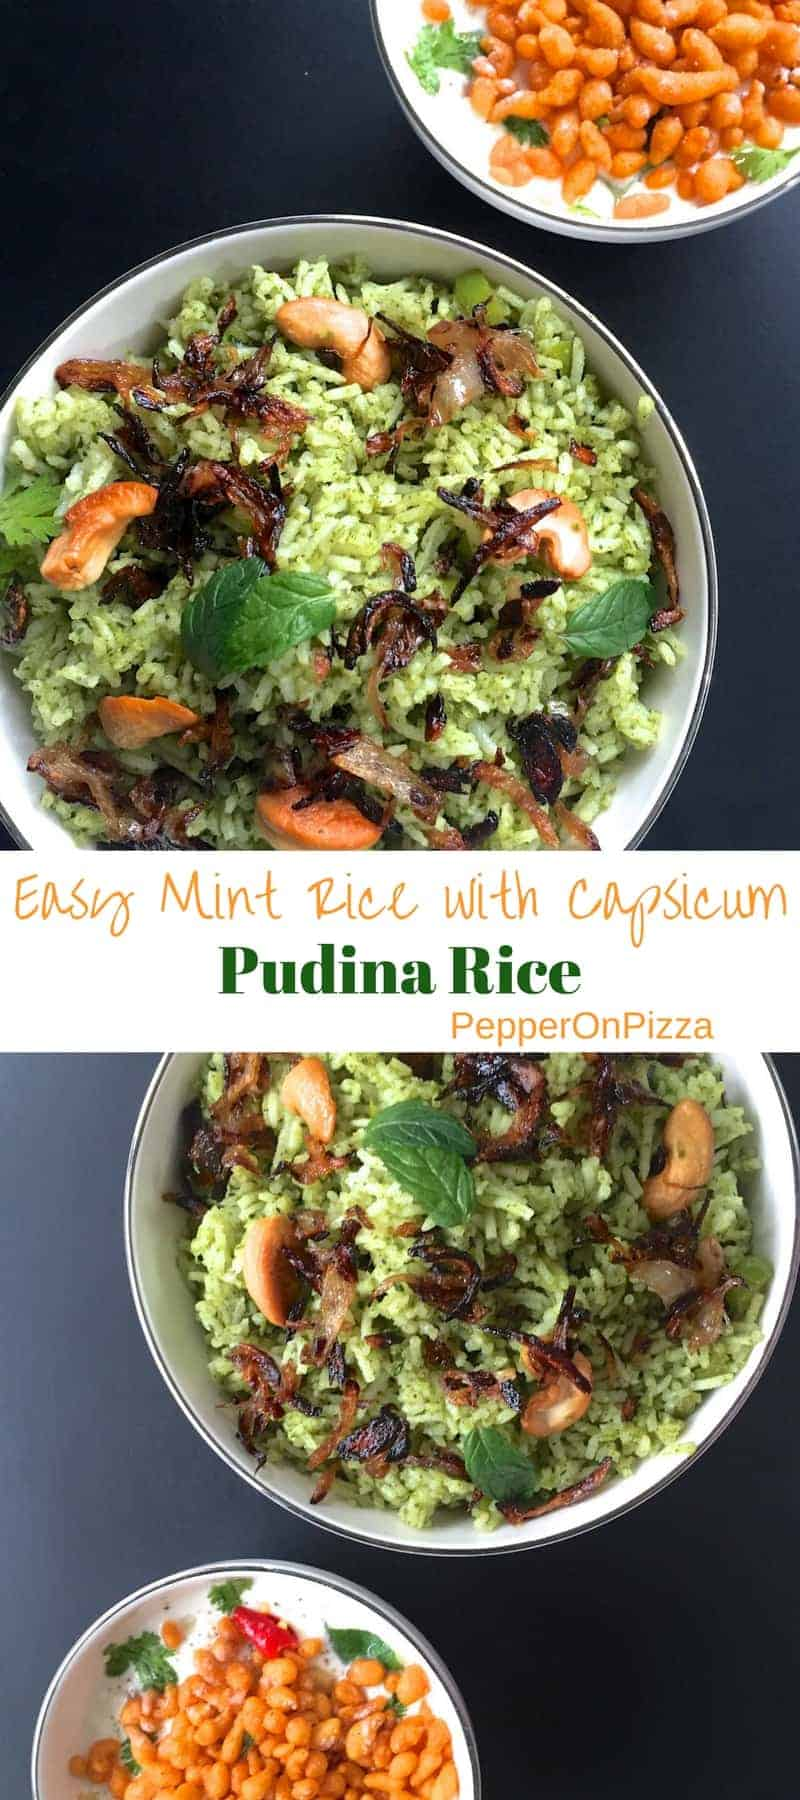 Mint Pudina Rice with capsicum_PepperOnPizza.com